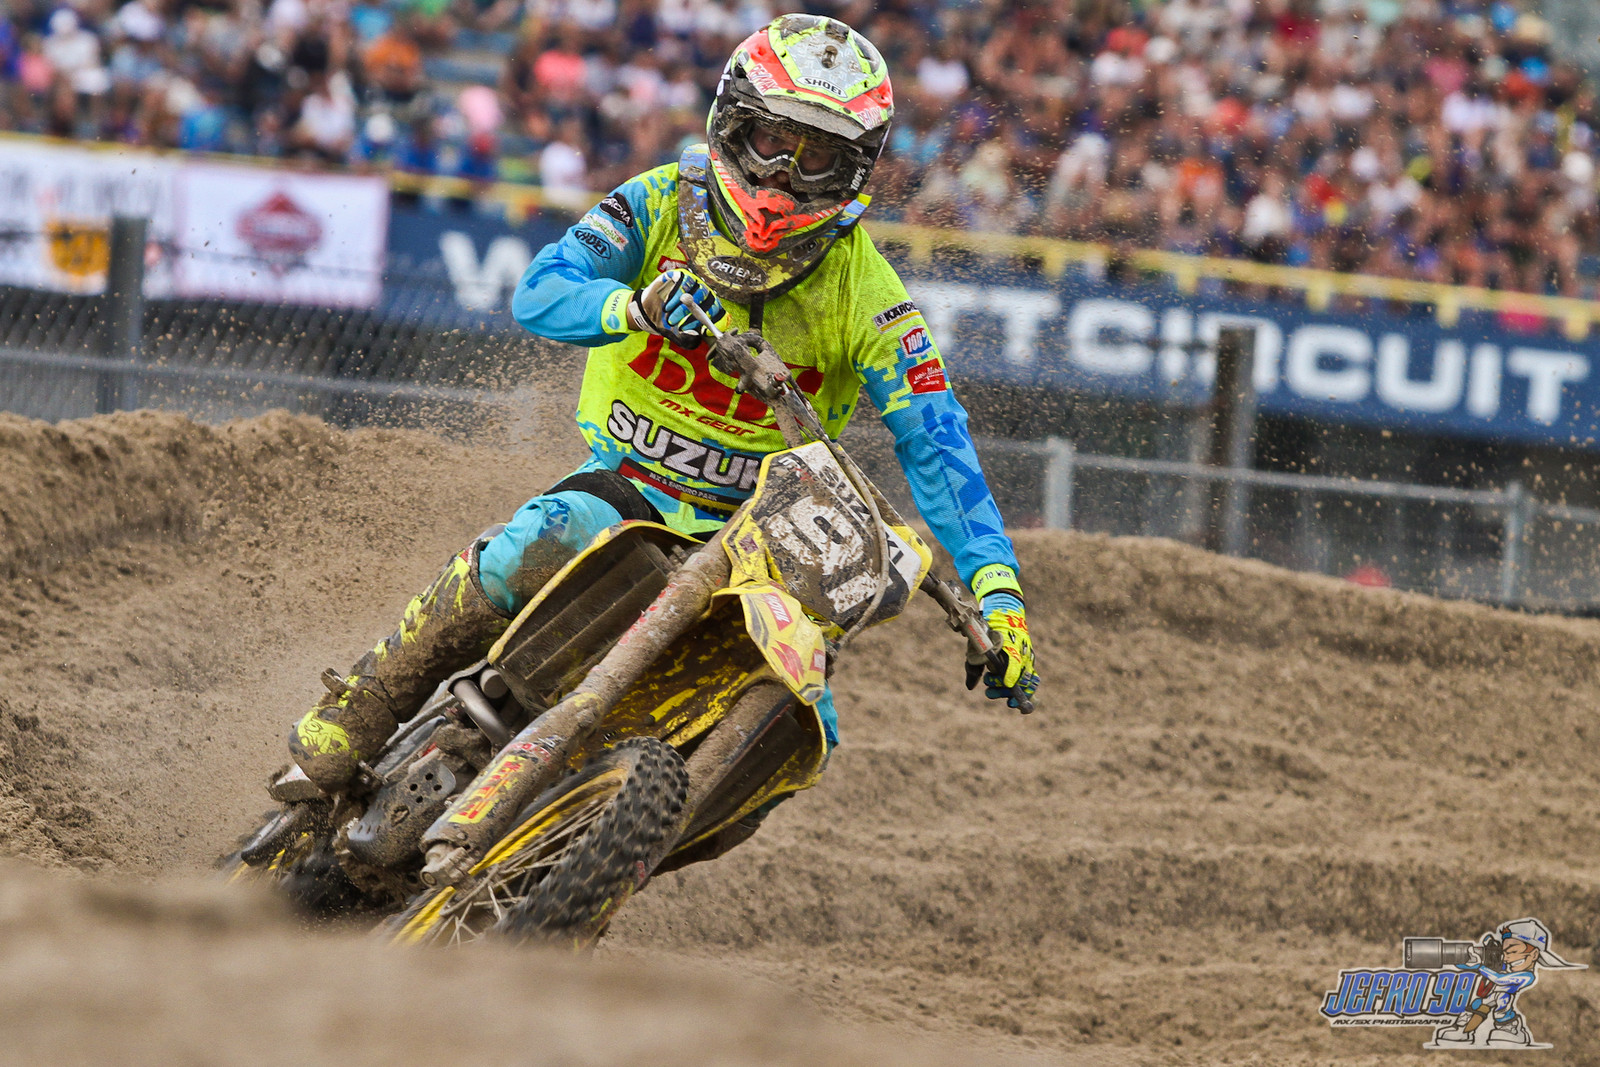 Jeremy Seewer - Photo Gallery: MXGP of the Netherlands - Motocross Pictures - Vital MX